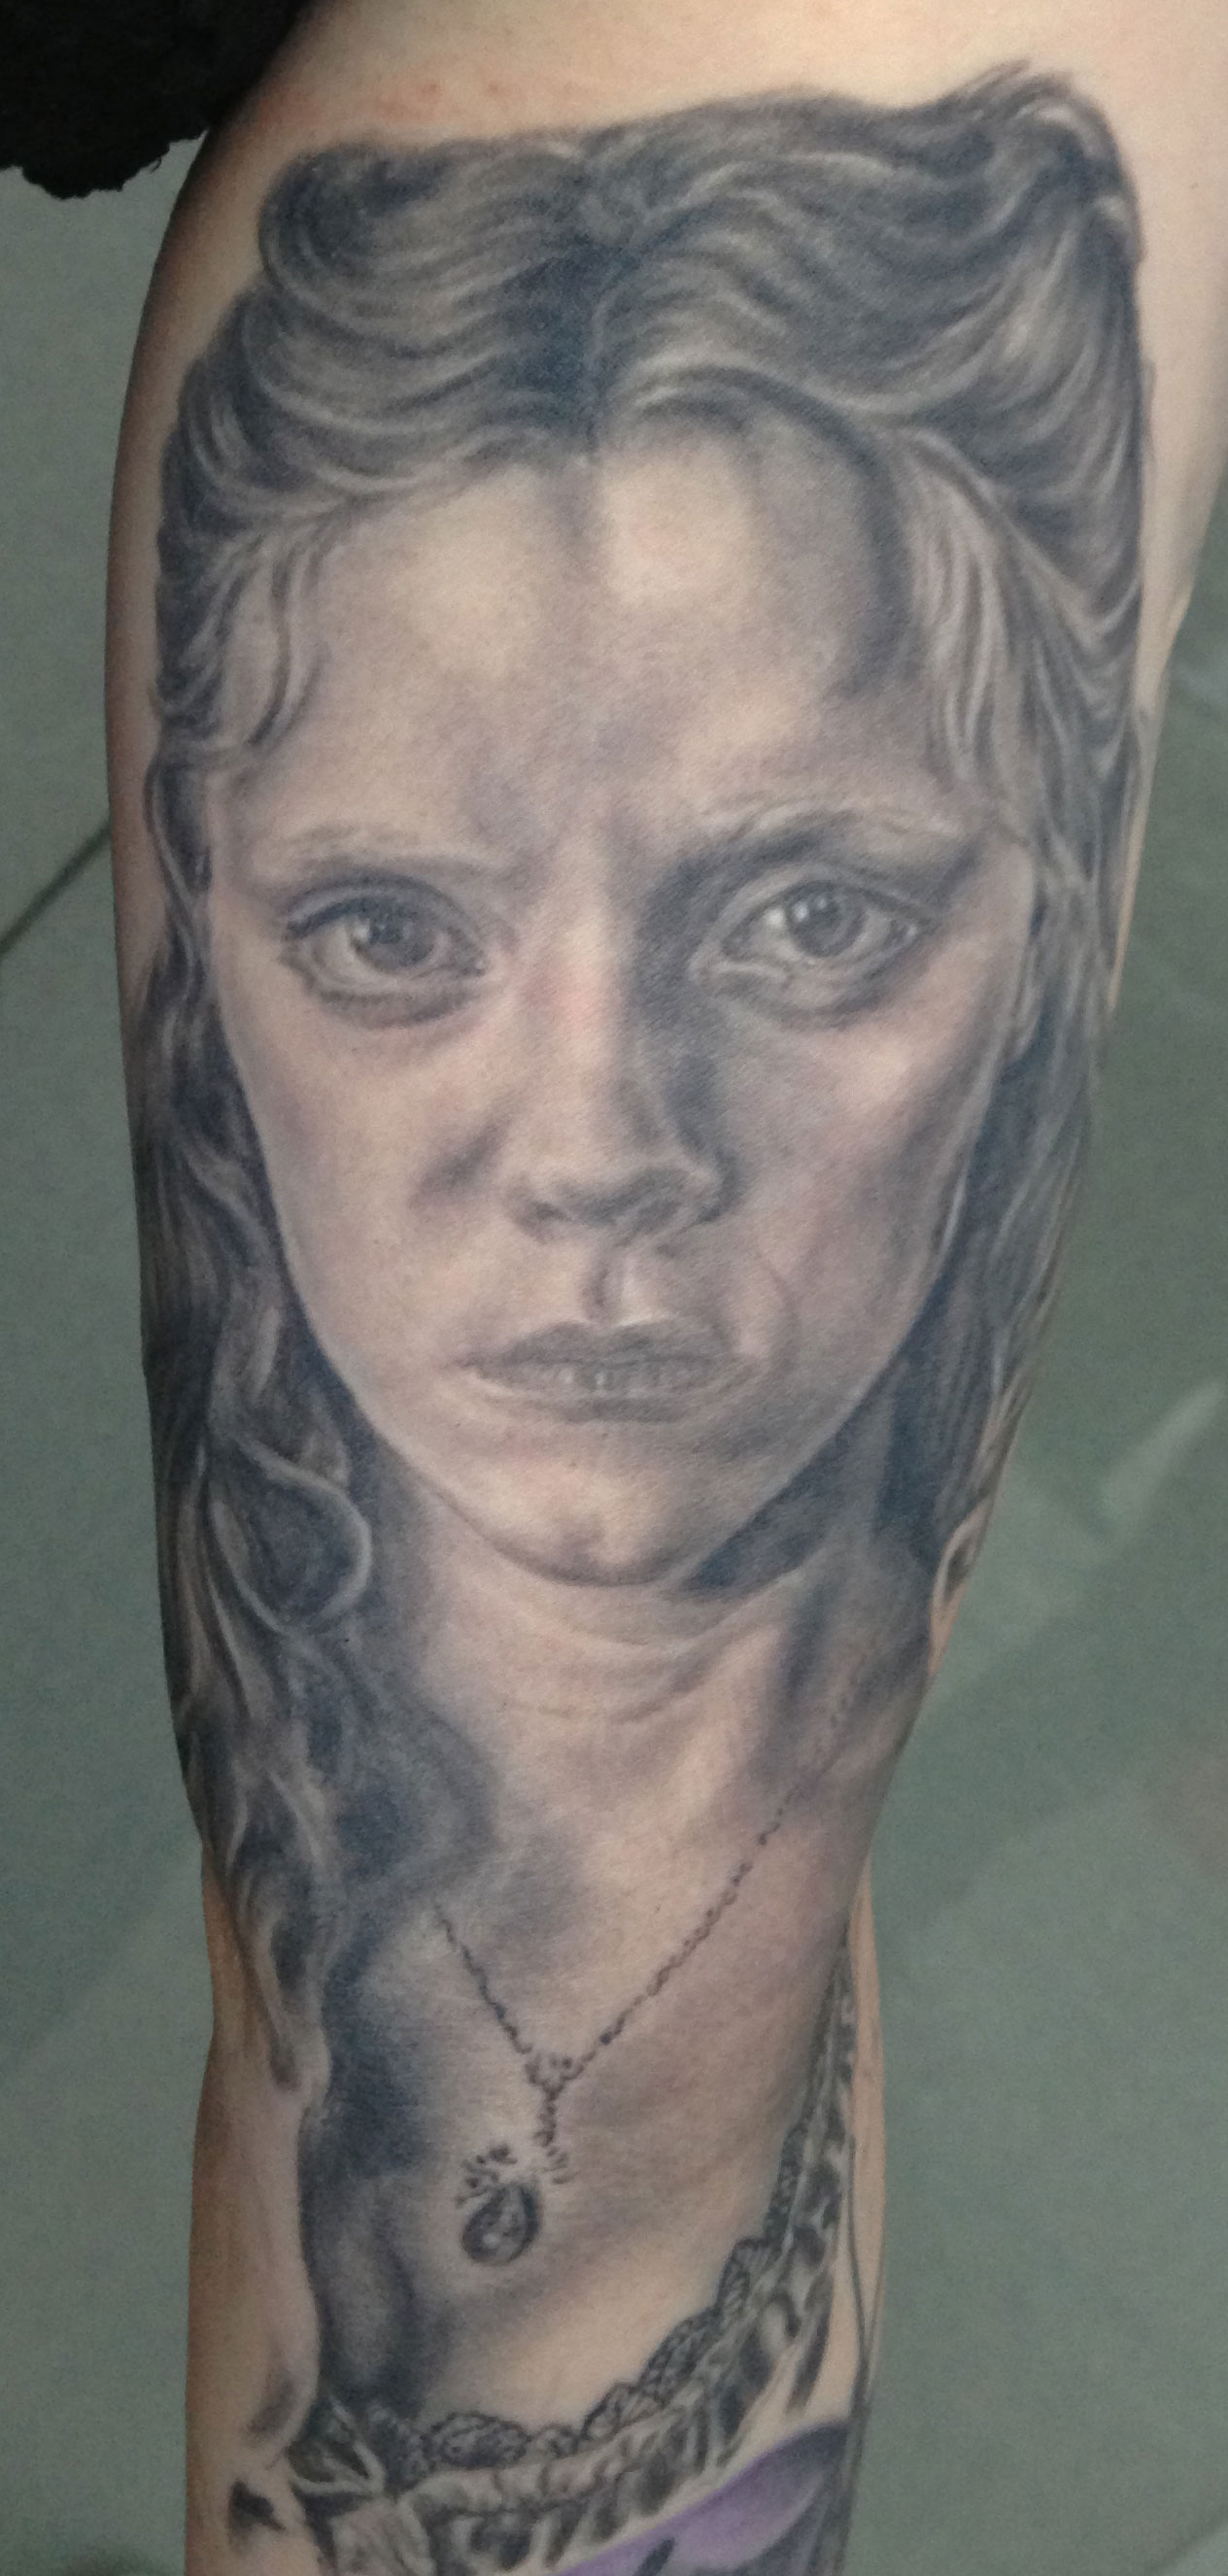 Black and Grey Christina Ricci Sleepy Hollow Portrait Tattoo, (healed)